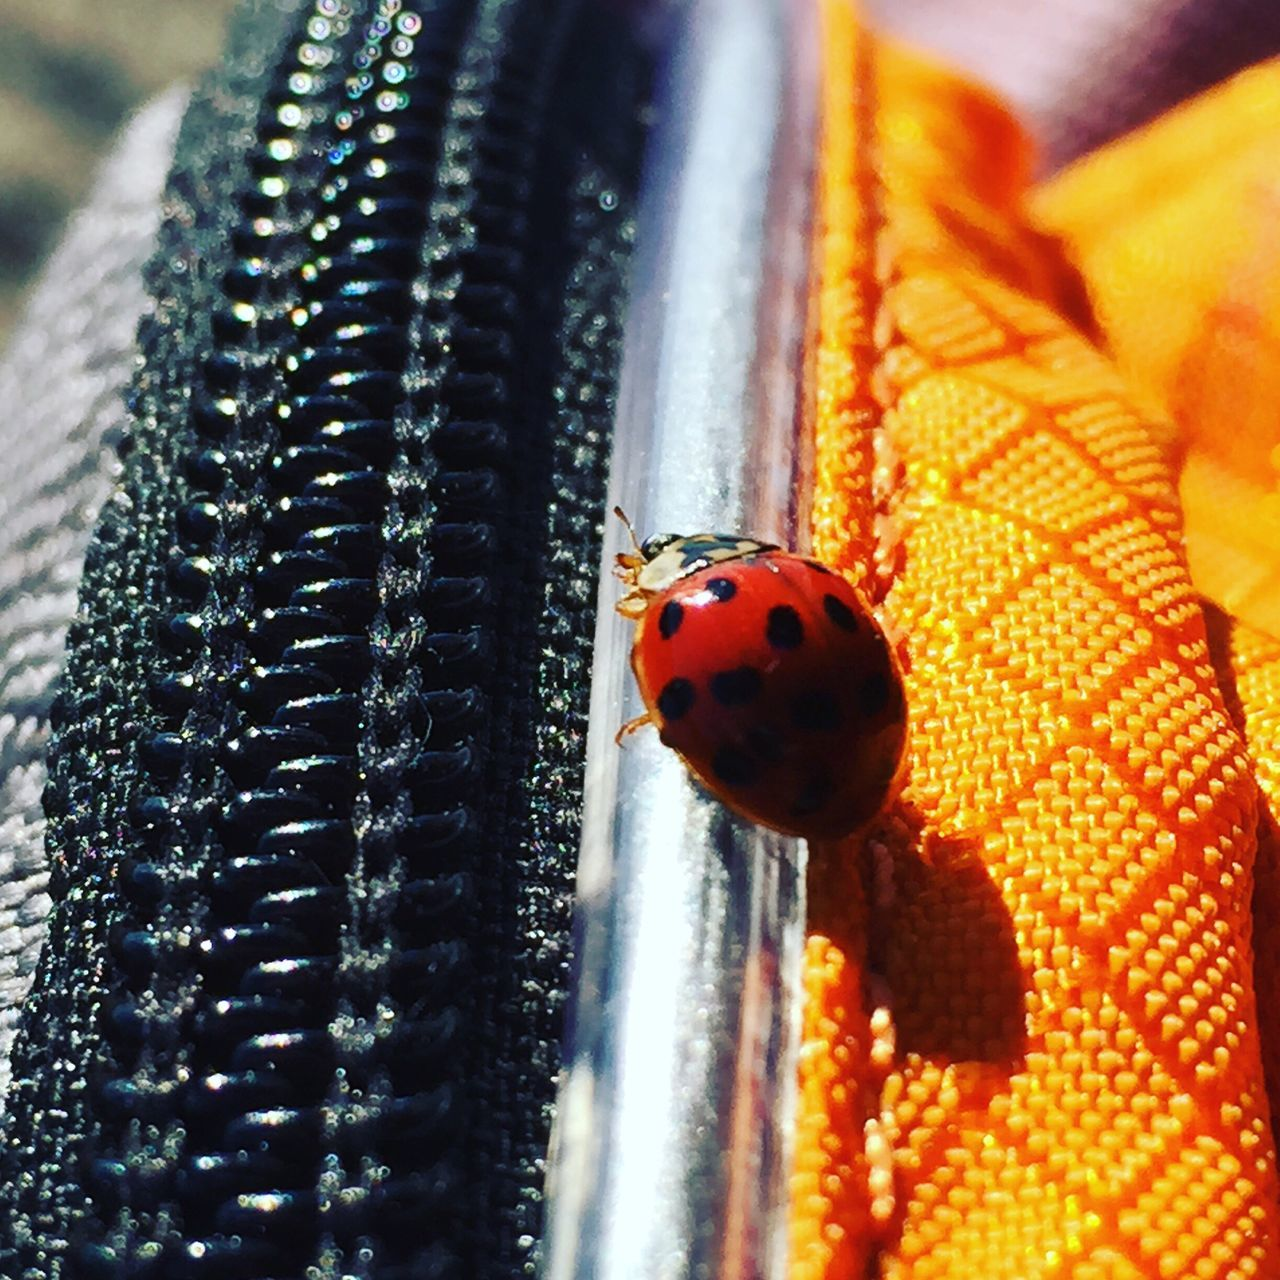 Bug Bugslife Ladybug Hello World Hanging Out Enjoying Life Relaxing Hiking Backpack Hiking Bag Presidents Award Nature Surprise Taking Photos Mountain Hiking Red And Black